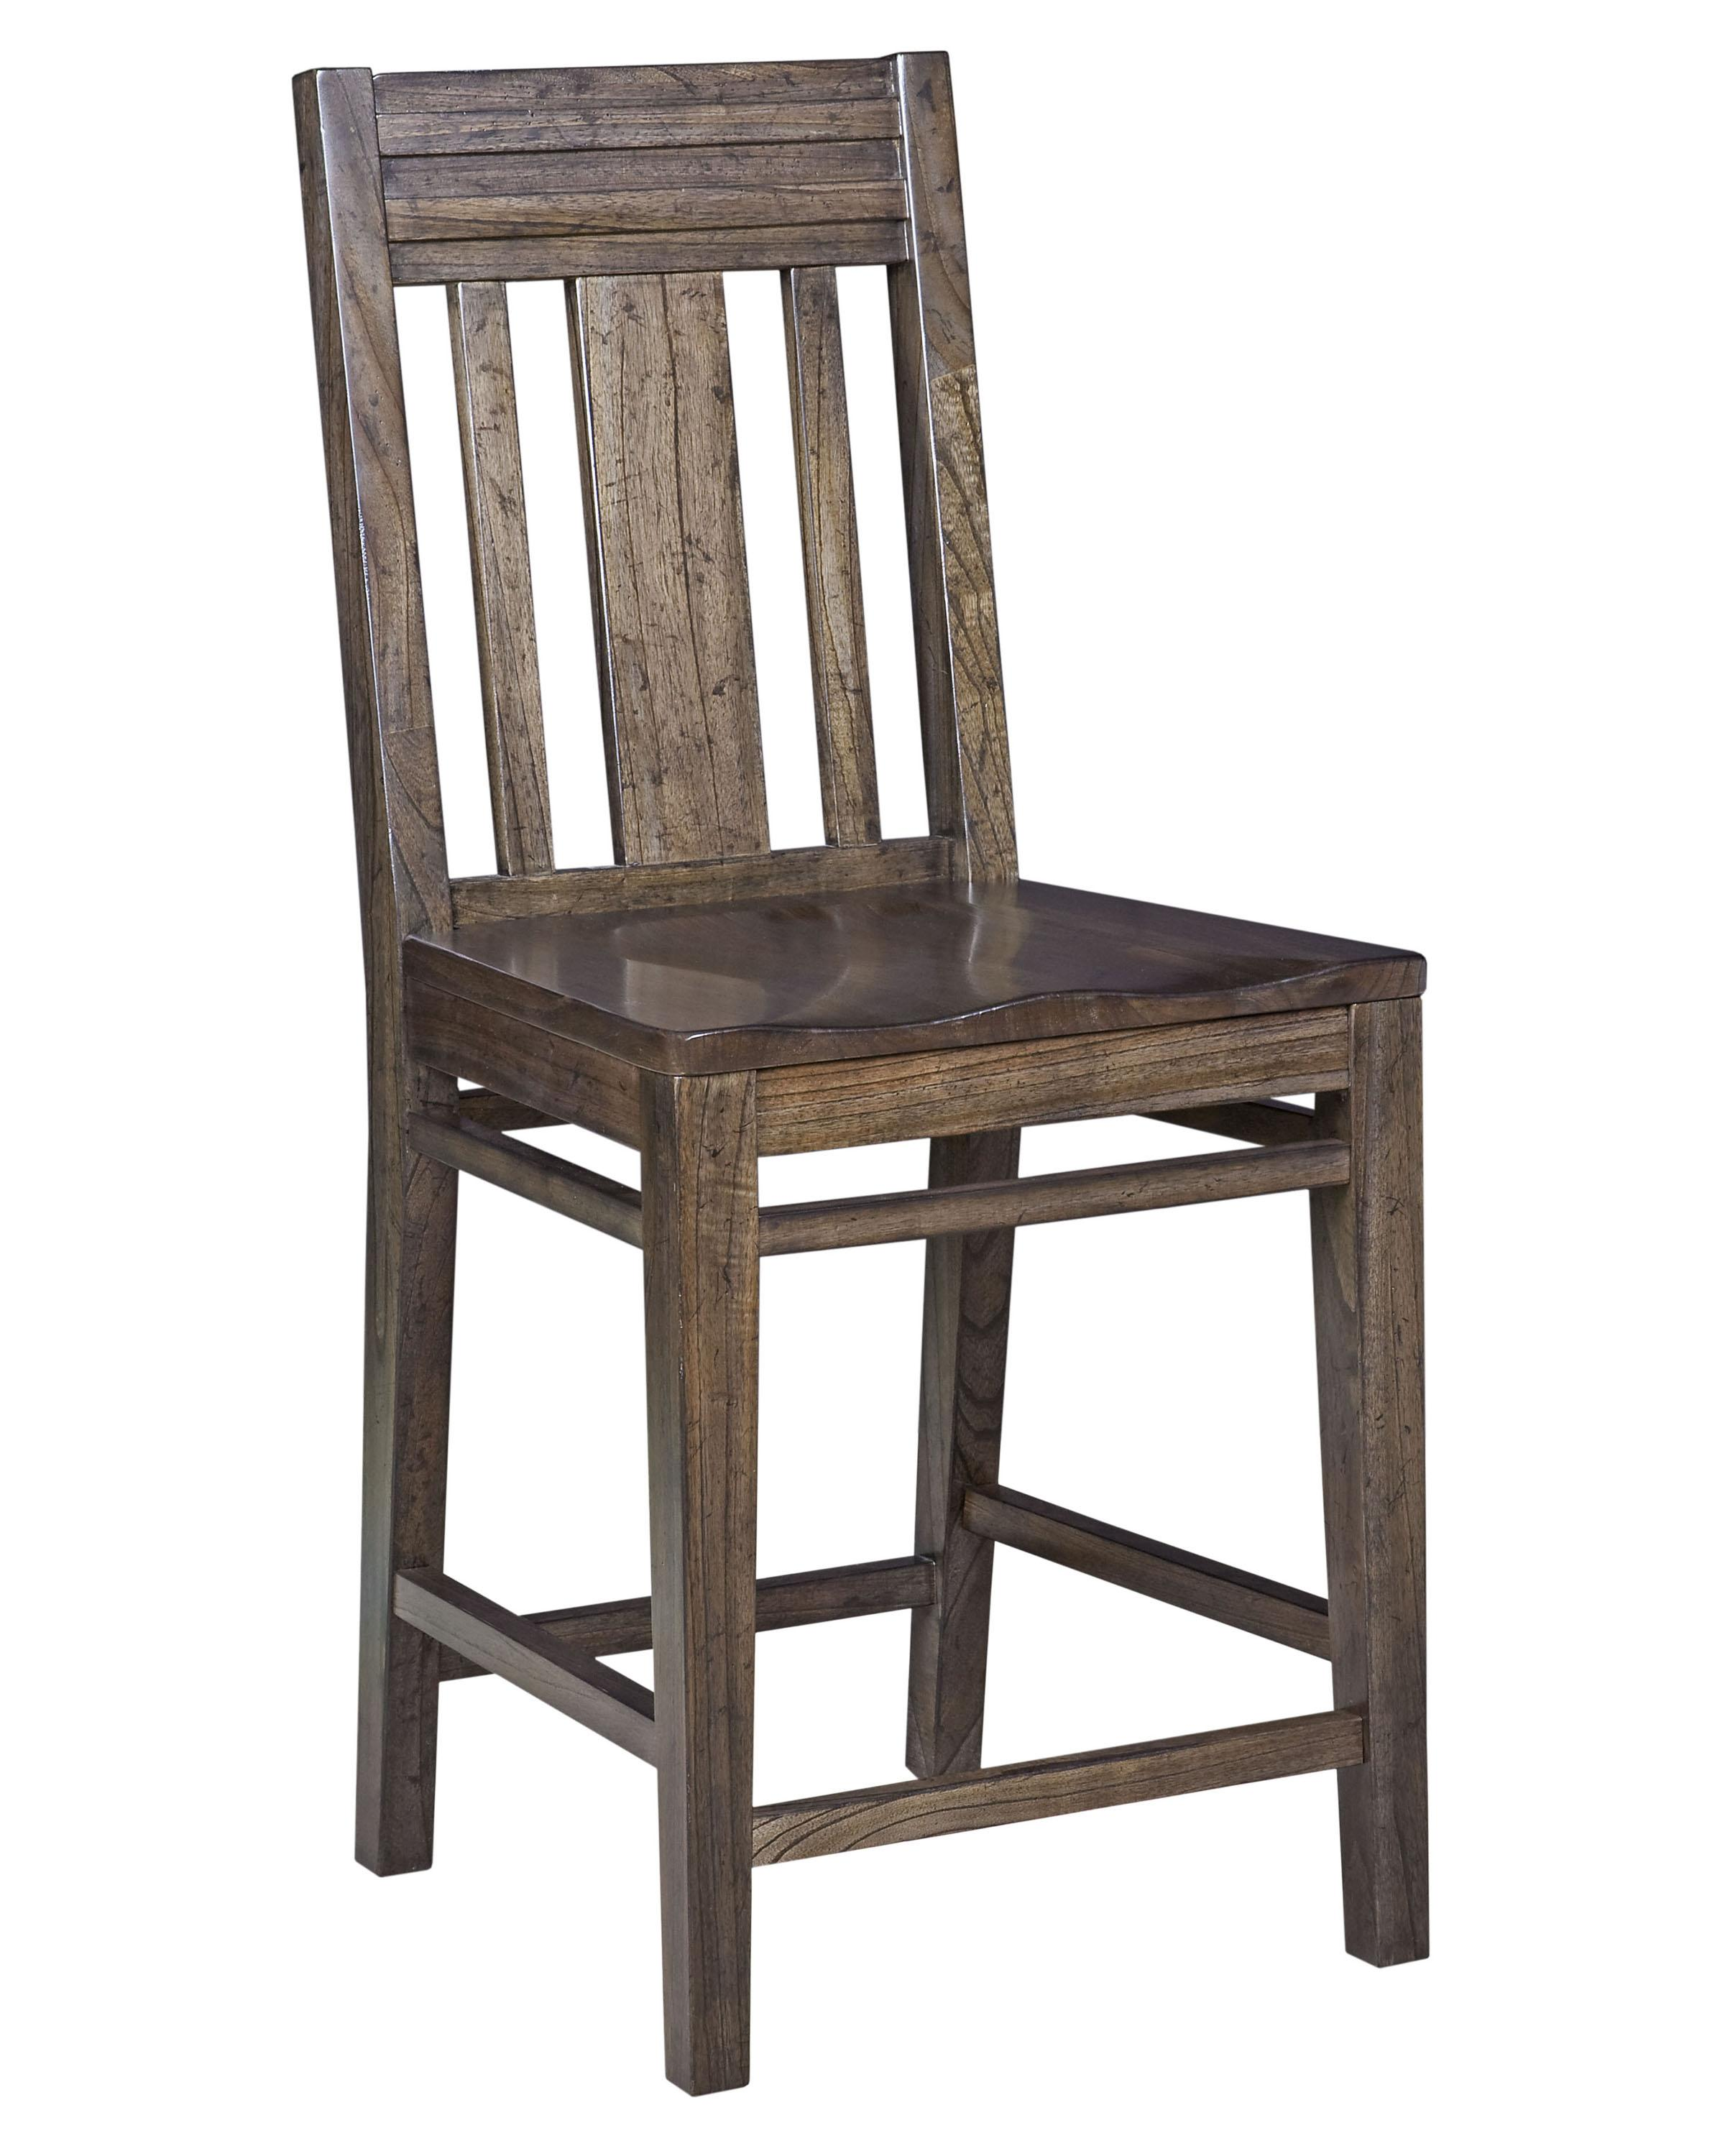 Modern Wood Counter Stool Kincaid Furniture Montreat 84 067v Contemporary Solid Wood